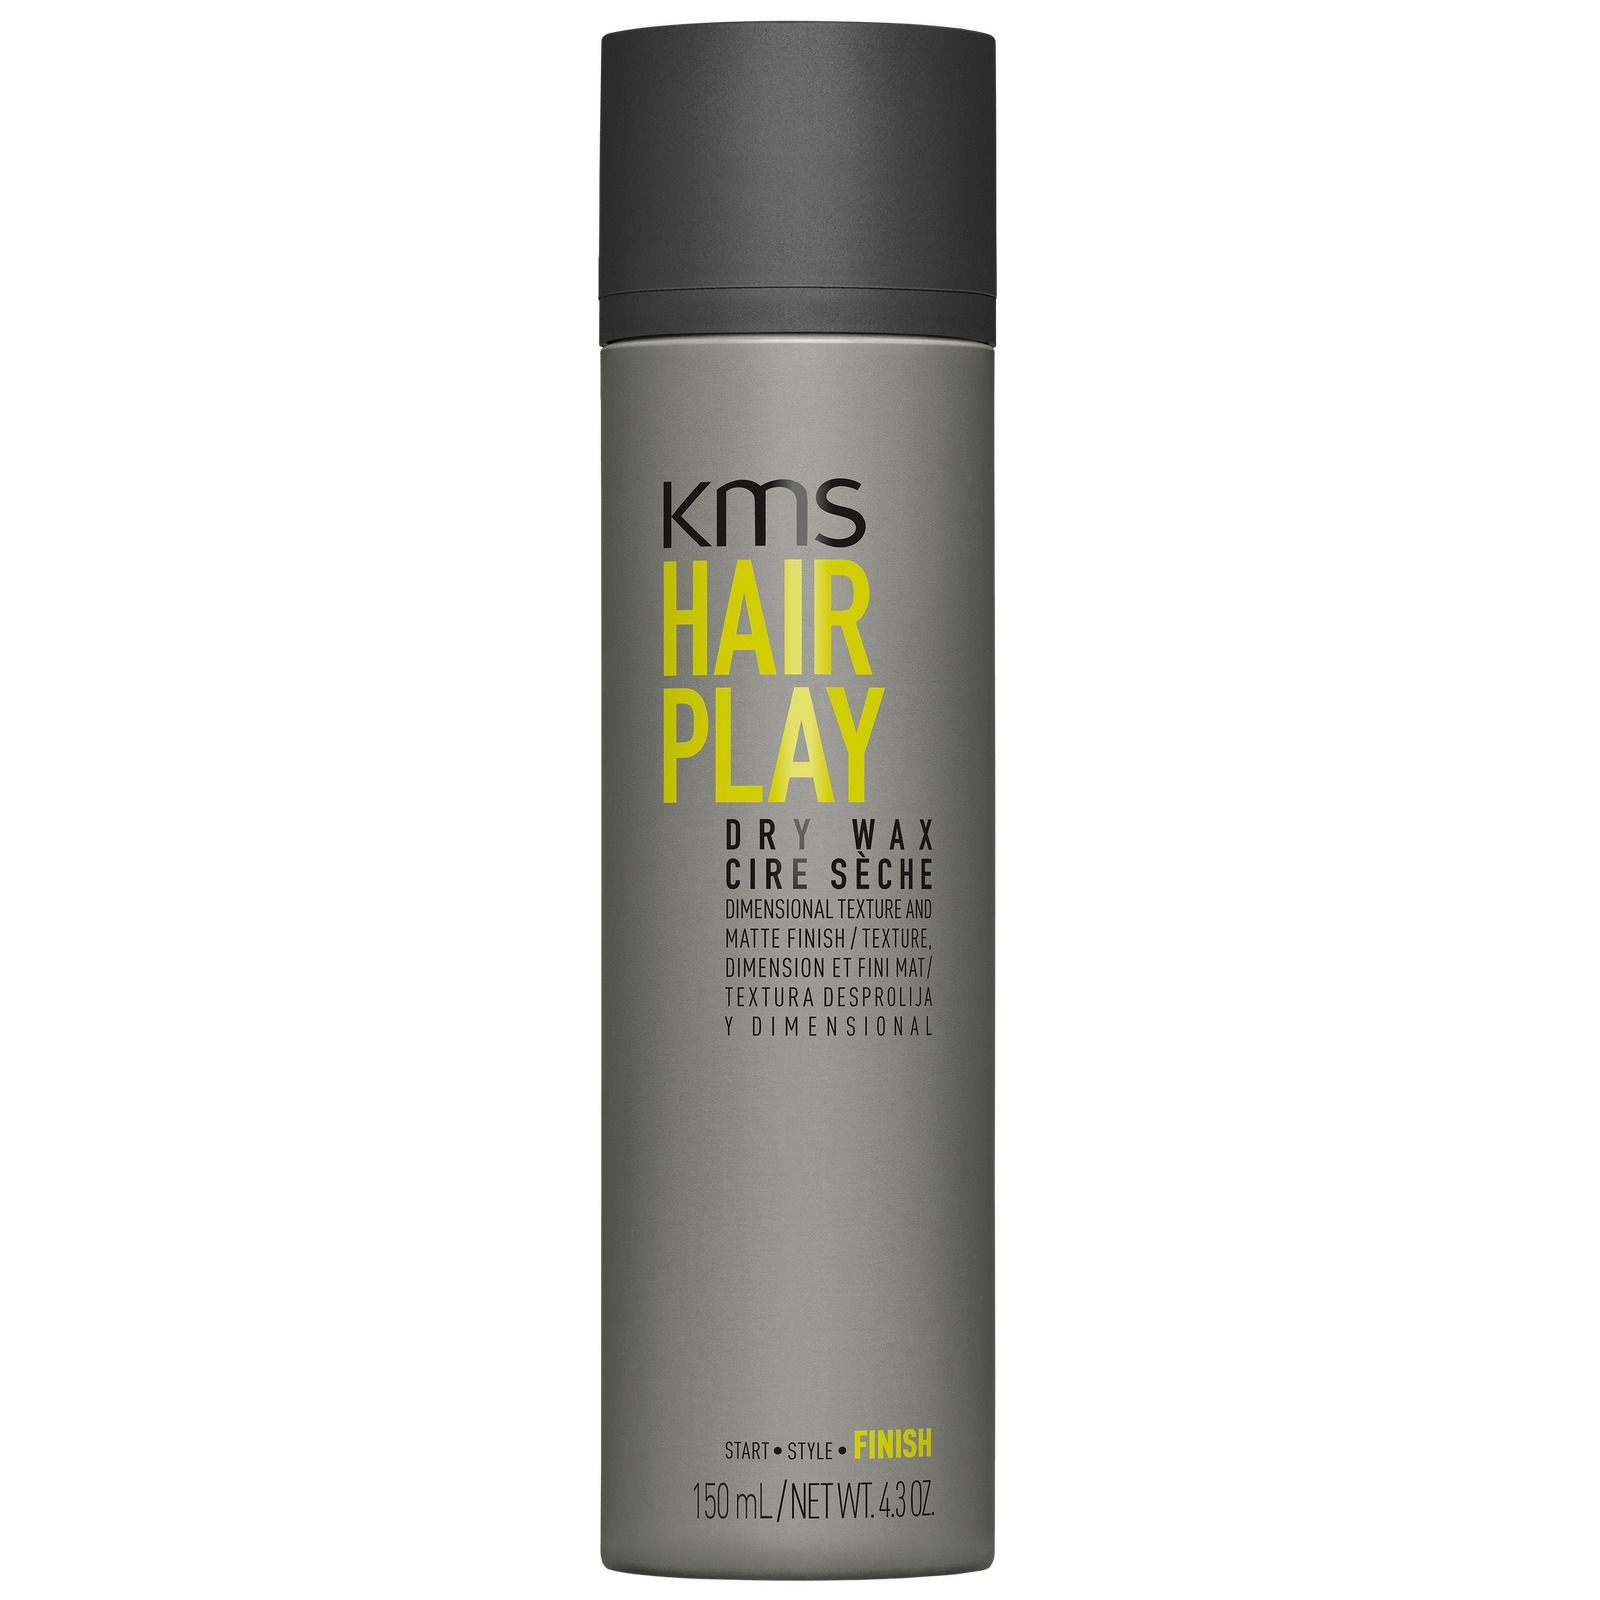 KMS FINISH HairPlay Dry Wax 150ml